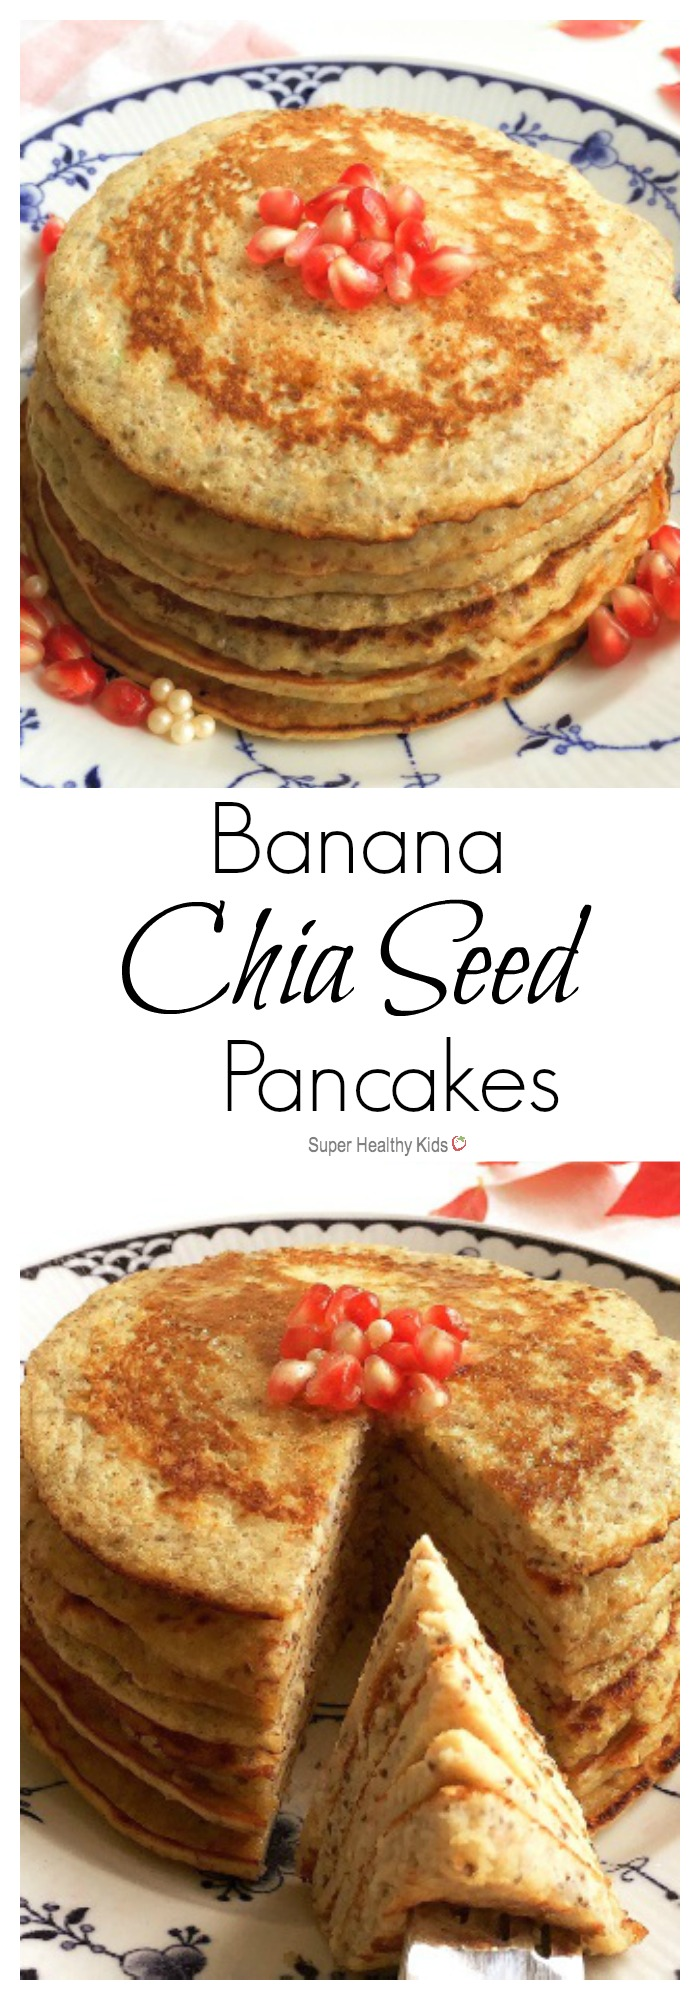 Banana Chia Seed Pancakes. Naturally sweet and filled with antioxidants, fiber, and protein! http://www.superhealthykids.com/banana-chia-seed-pancakes/